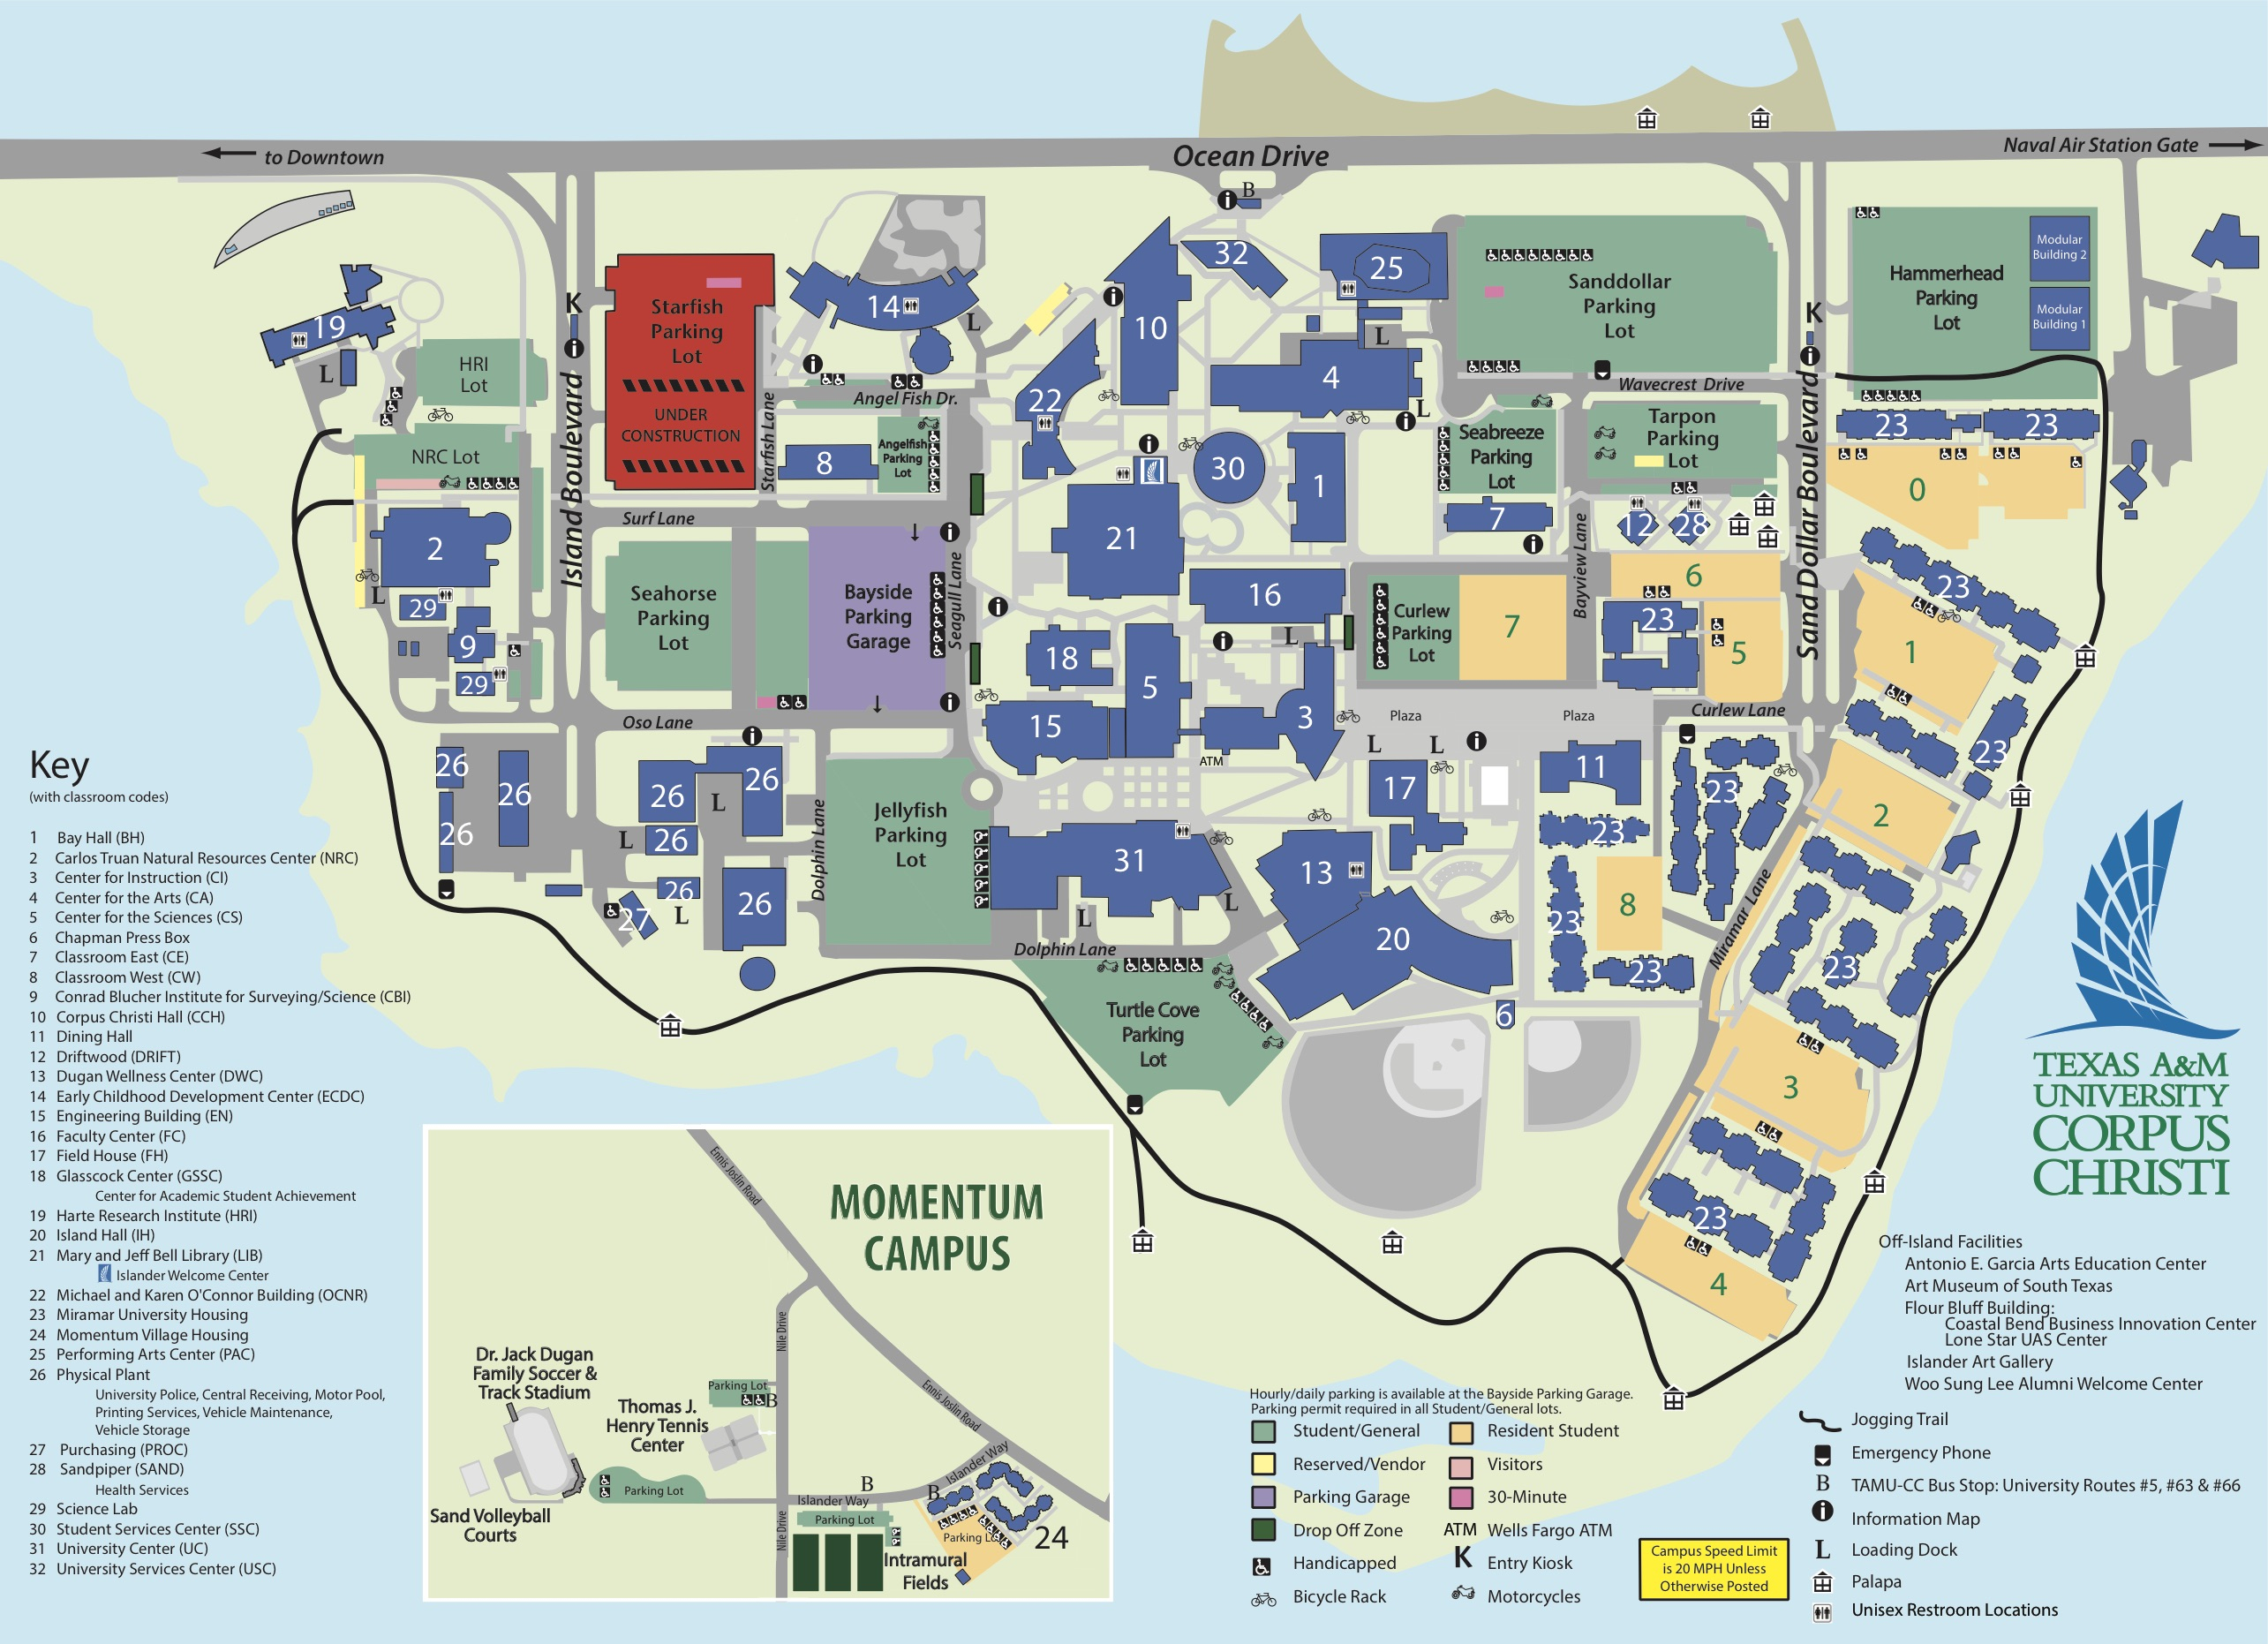 Campus Map Texas A&m University-Corpus Christi - Texas A&m Location Map